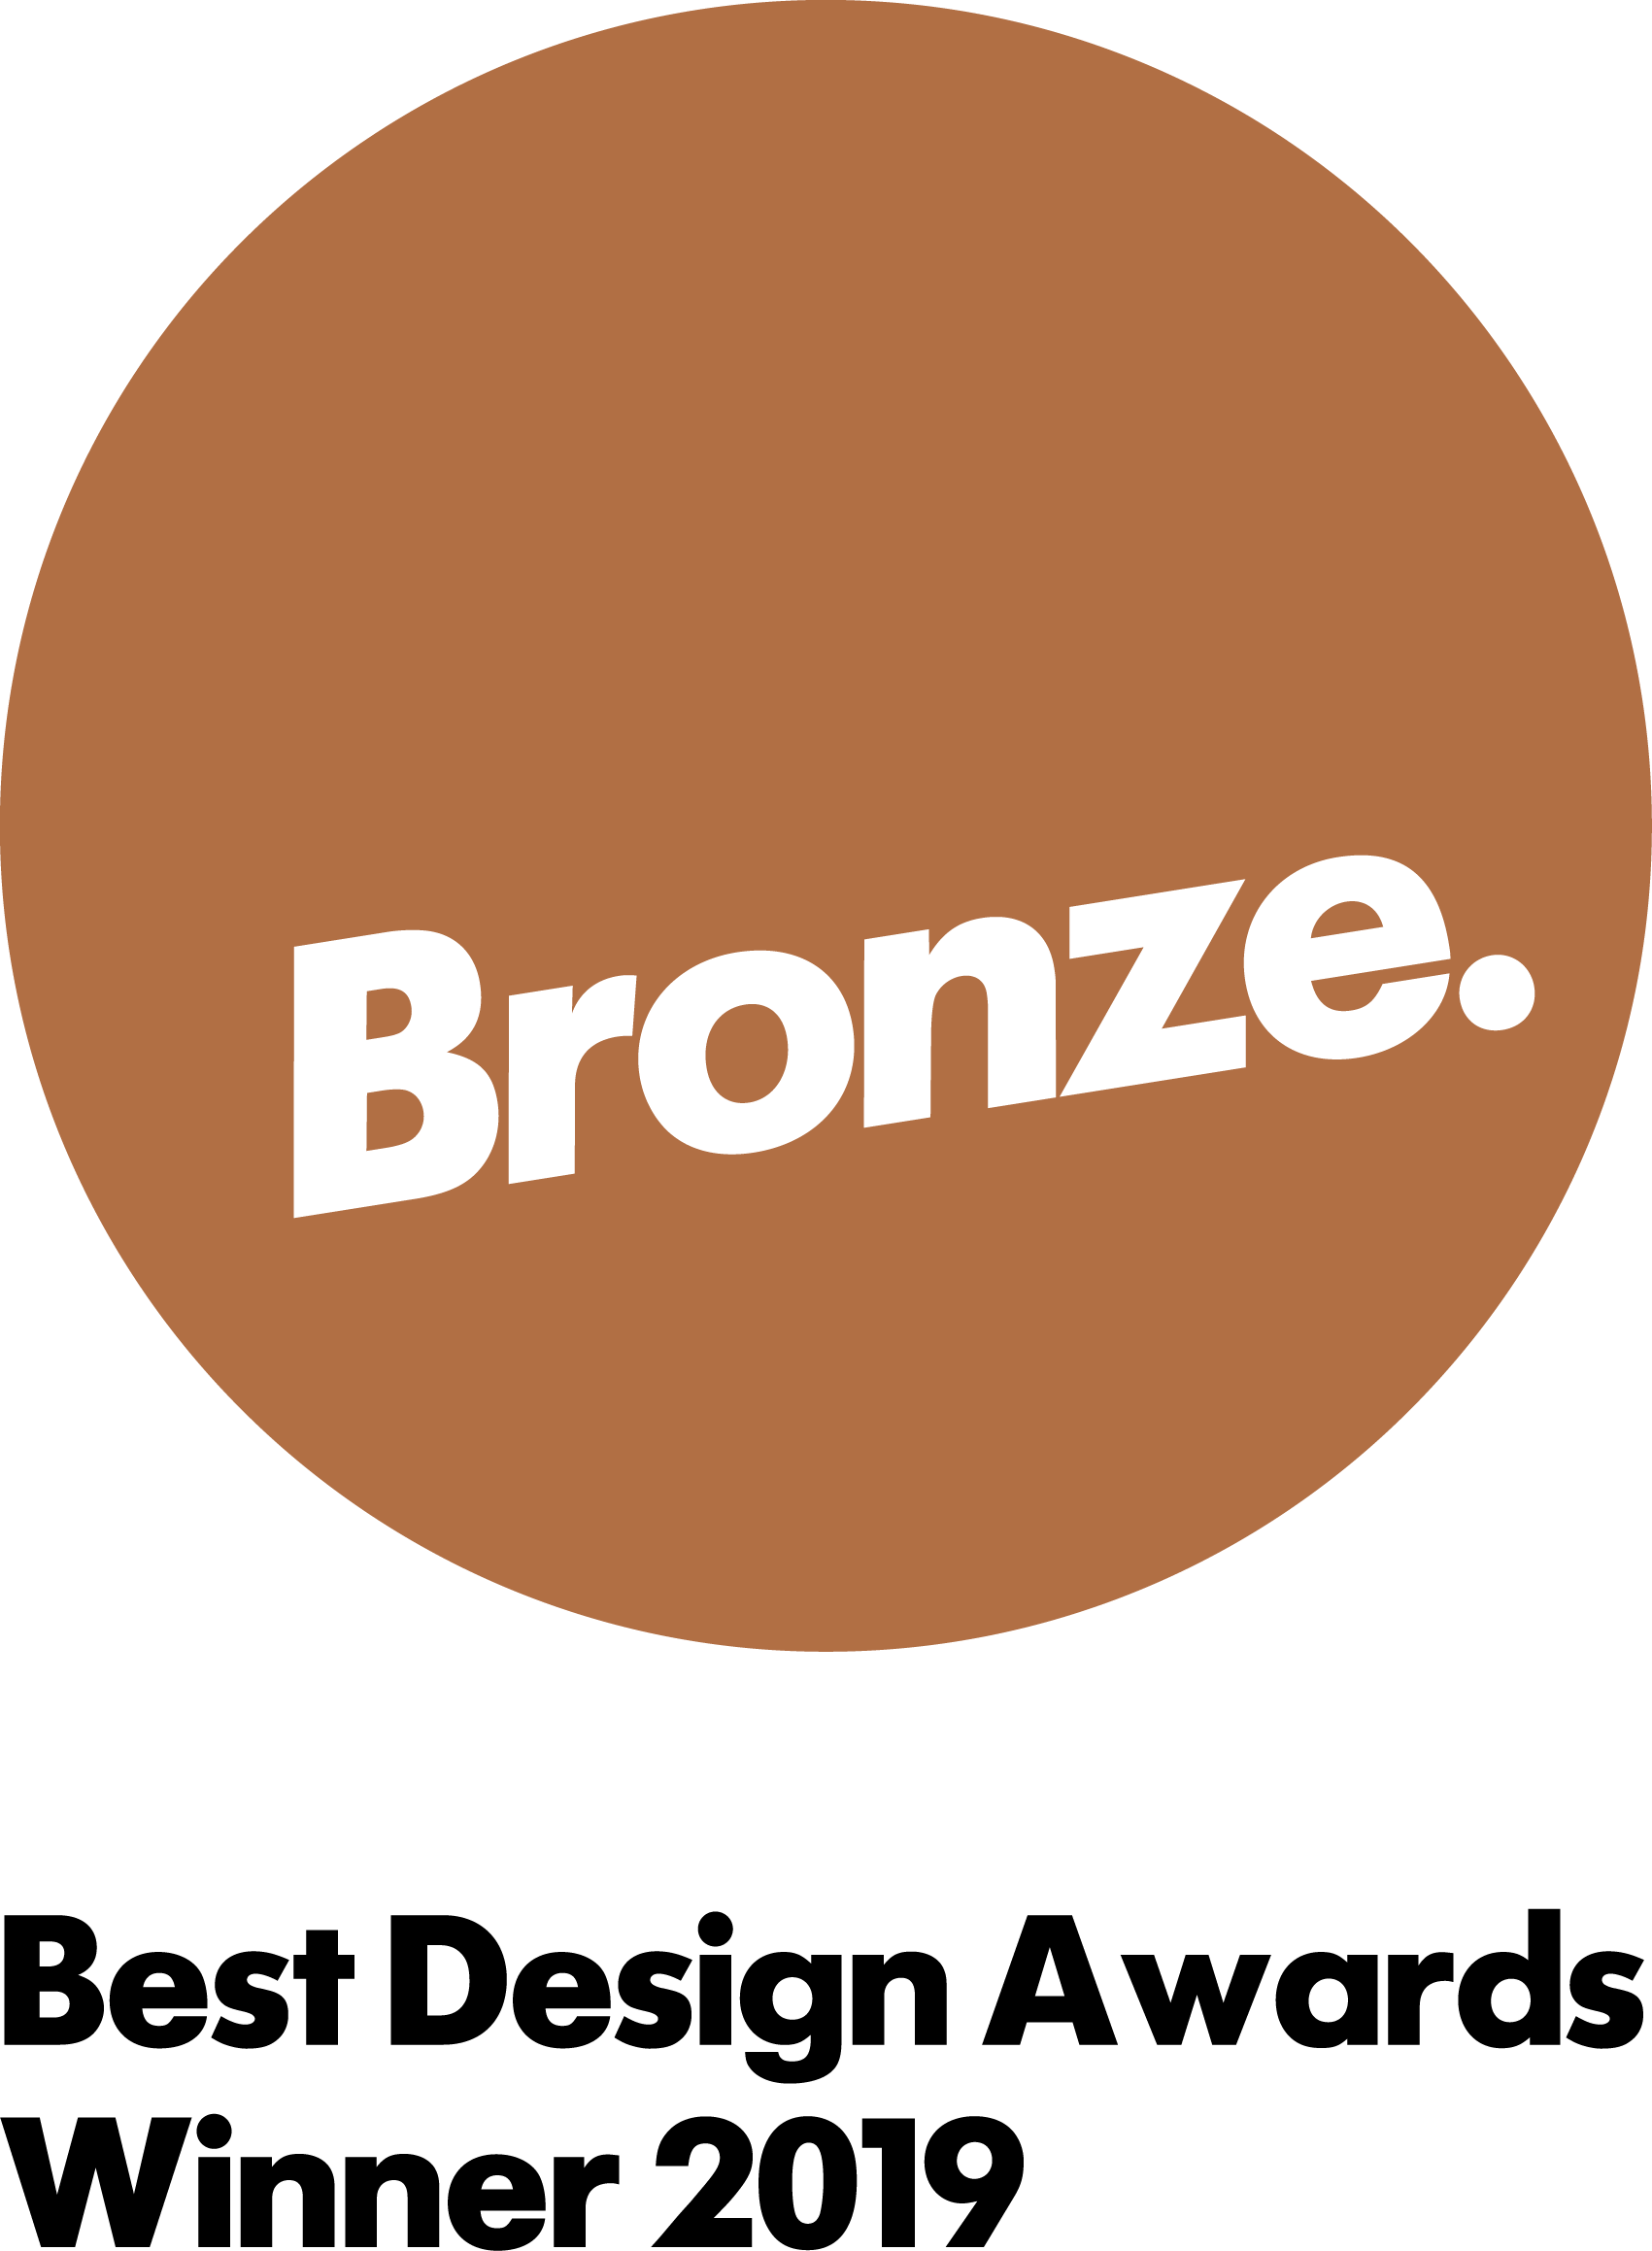 Best Template 2019 - Bronze Badge.png